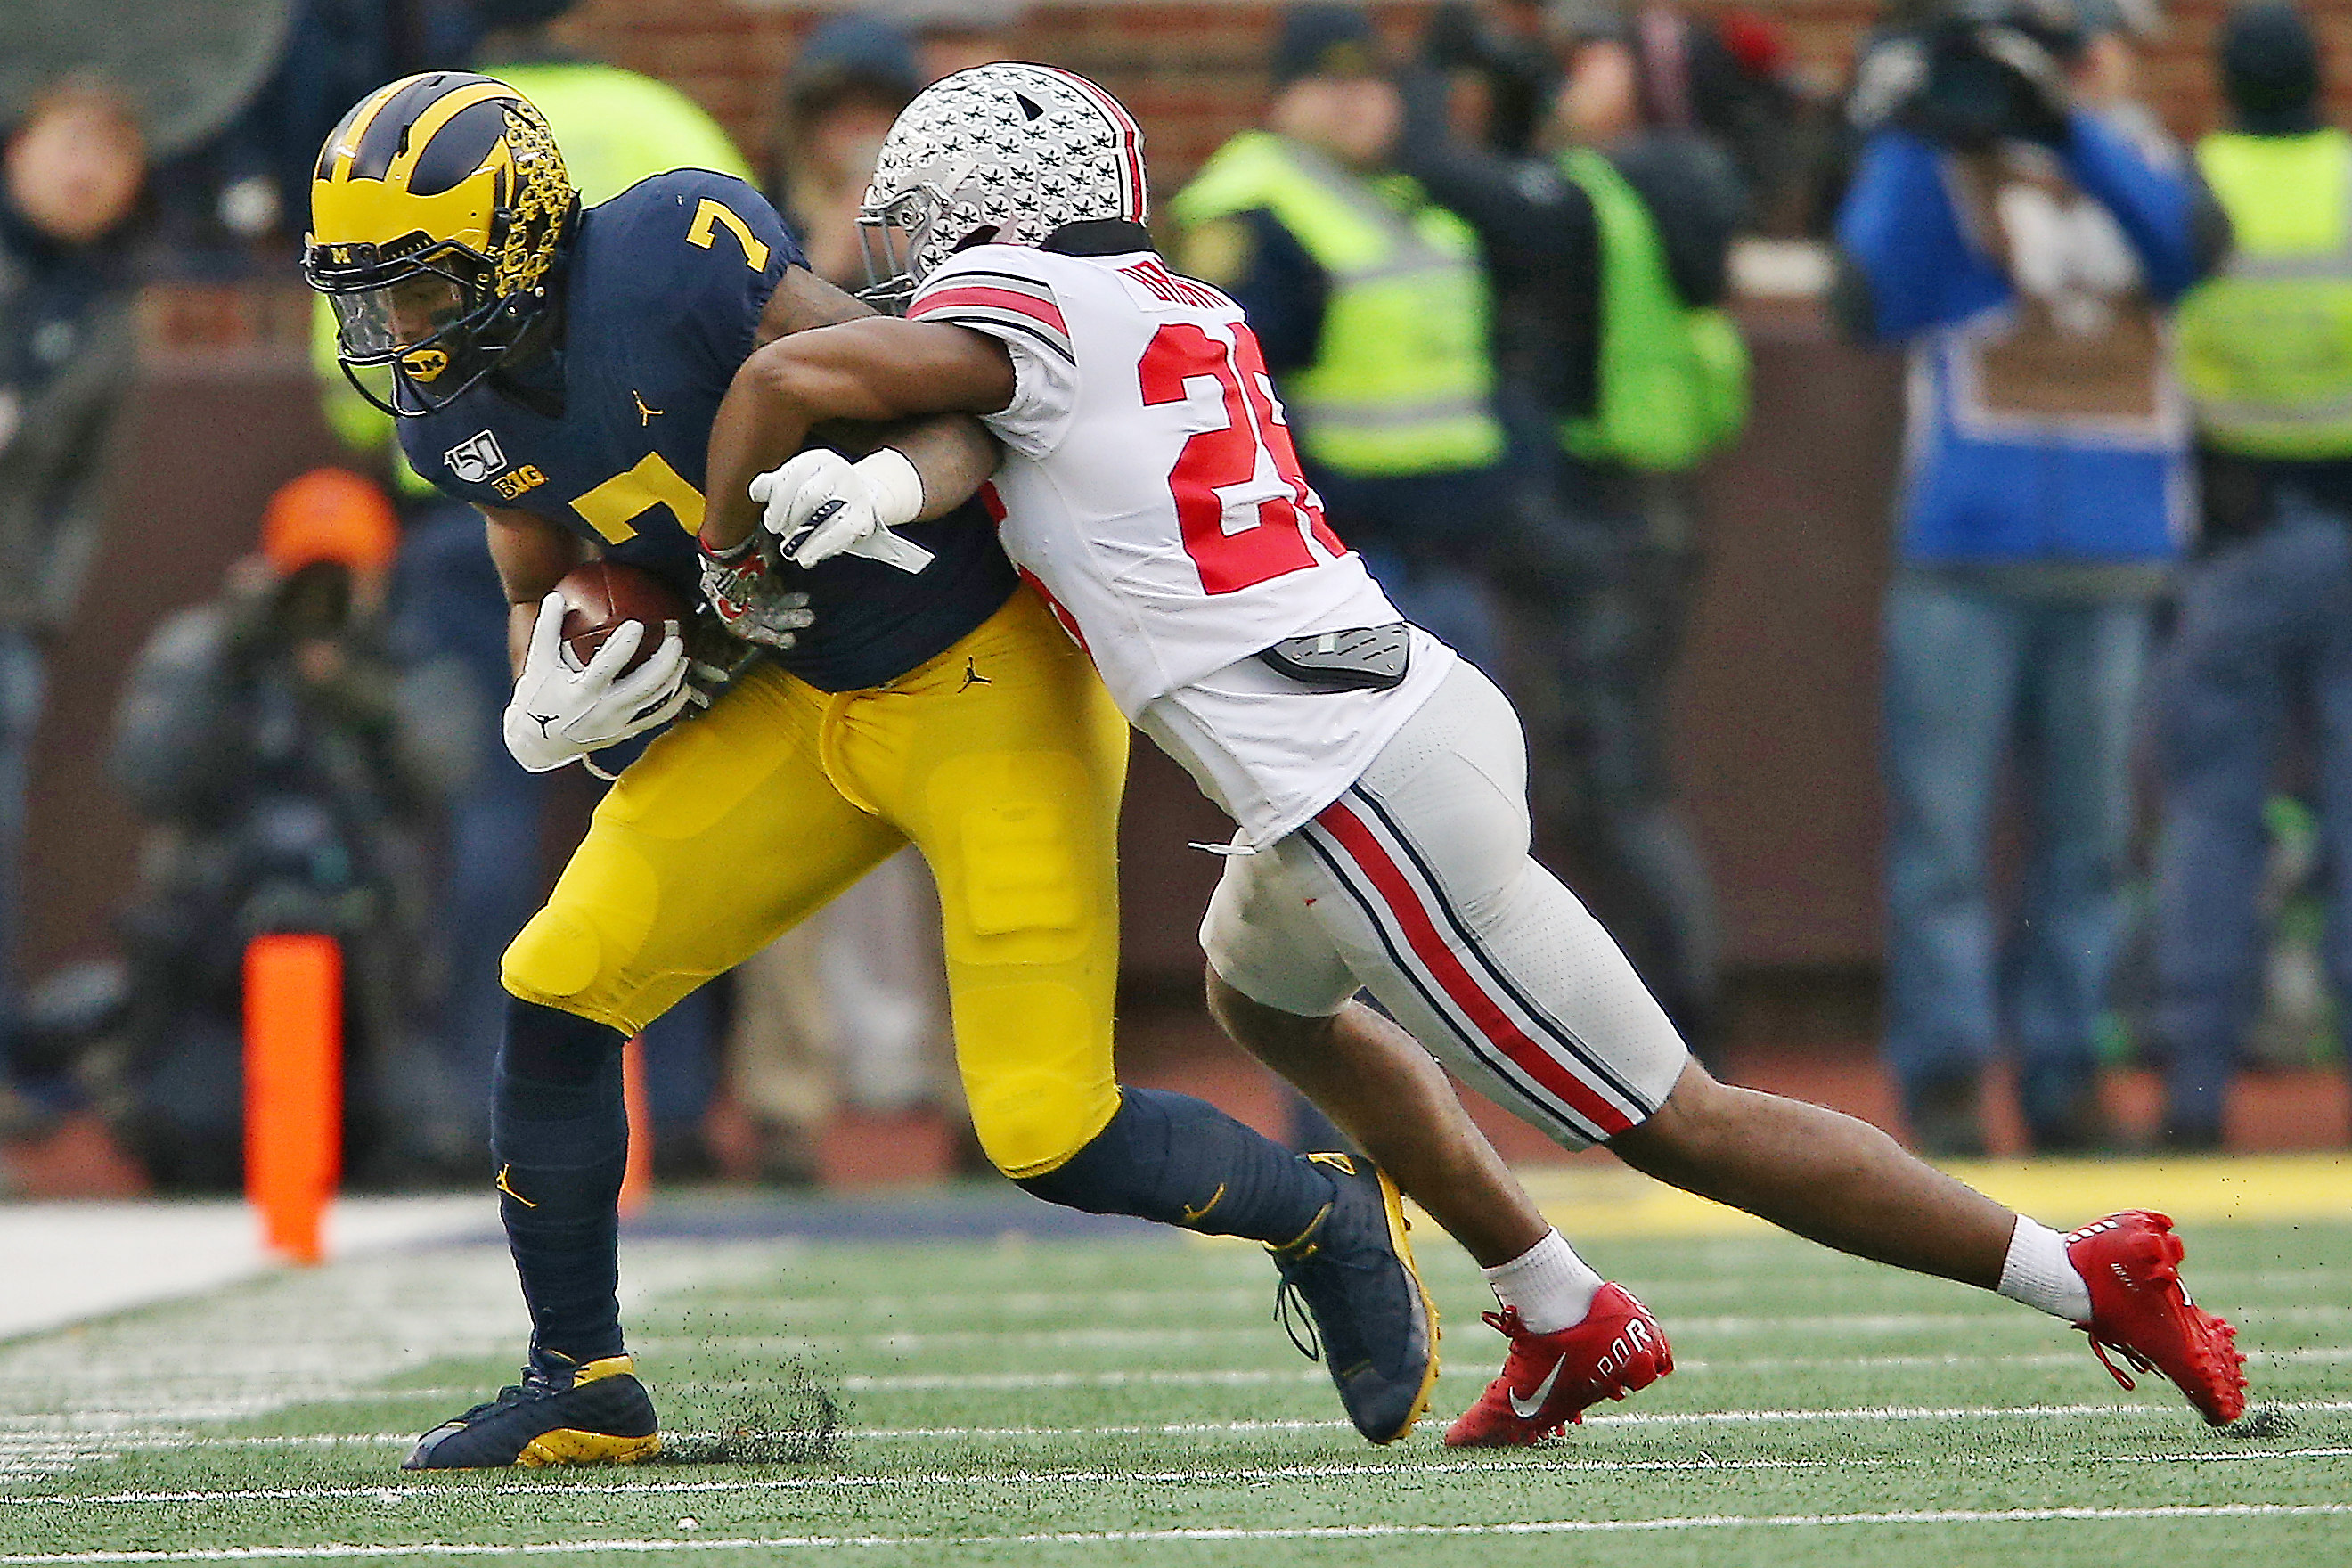 Michigan Falls One Spot In College Football Playoff Poll